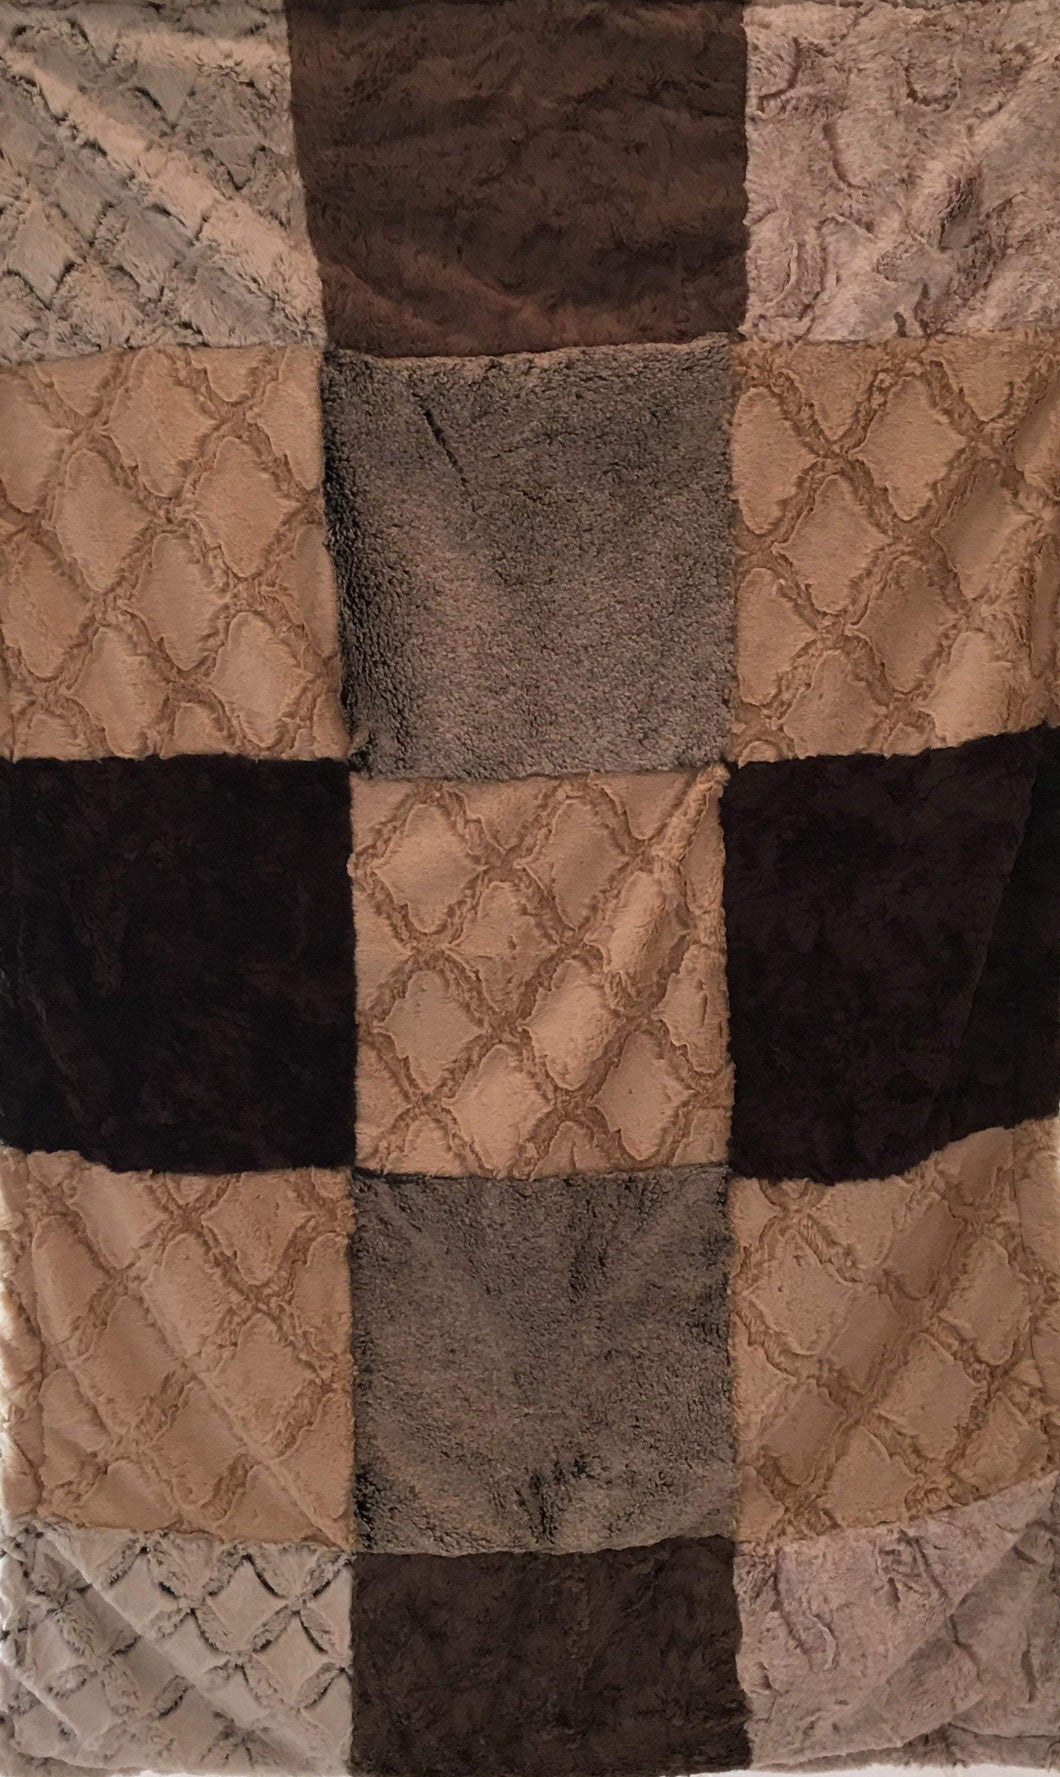 Luxe Cuddle Lattice in Sand, Heather Quartz, and Marble Cocoa Patchwork on Luxe Cuddle Frost Chocolate